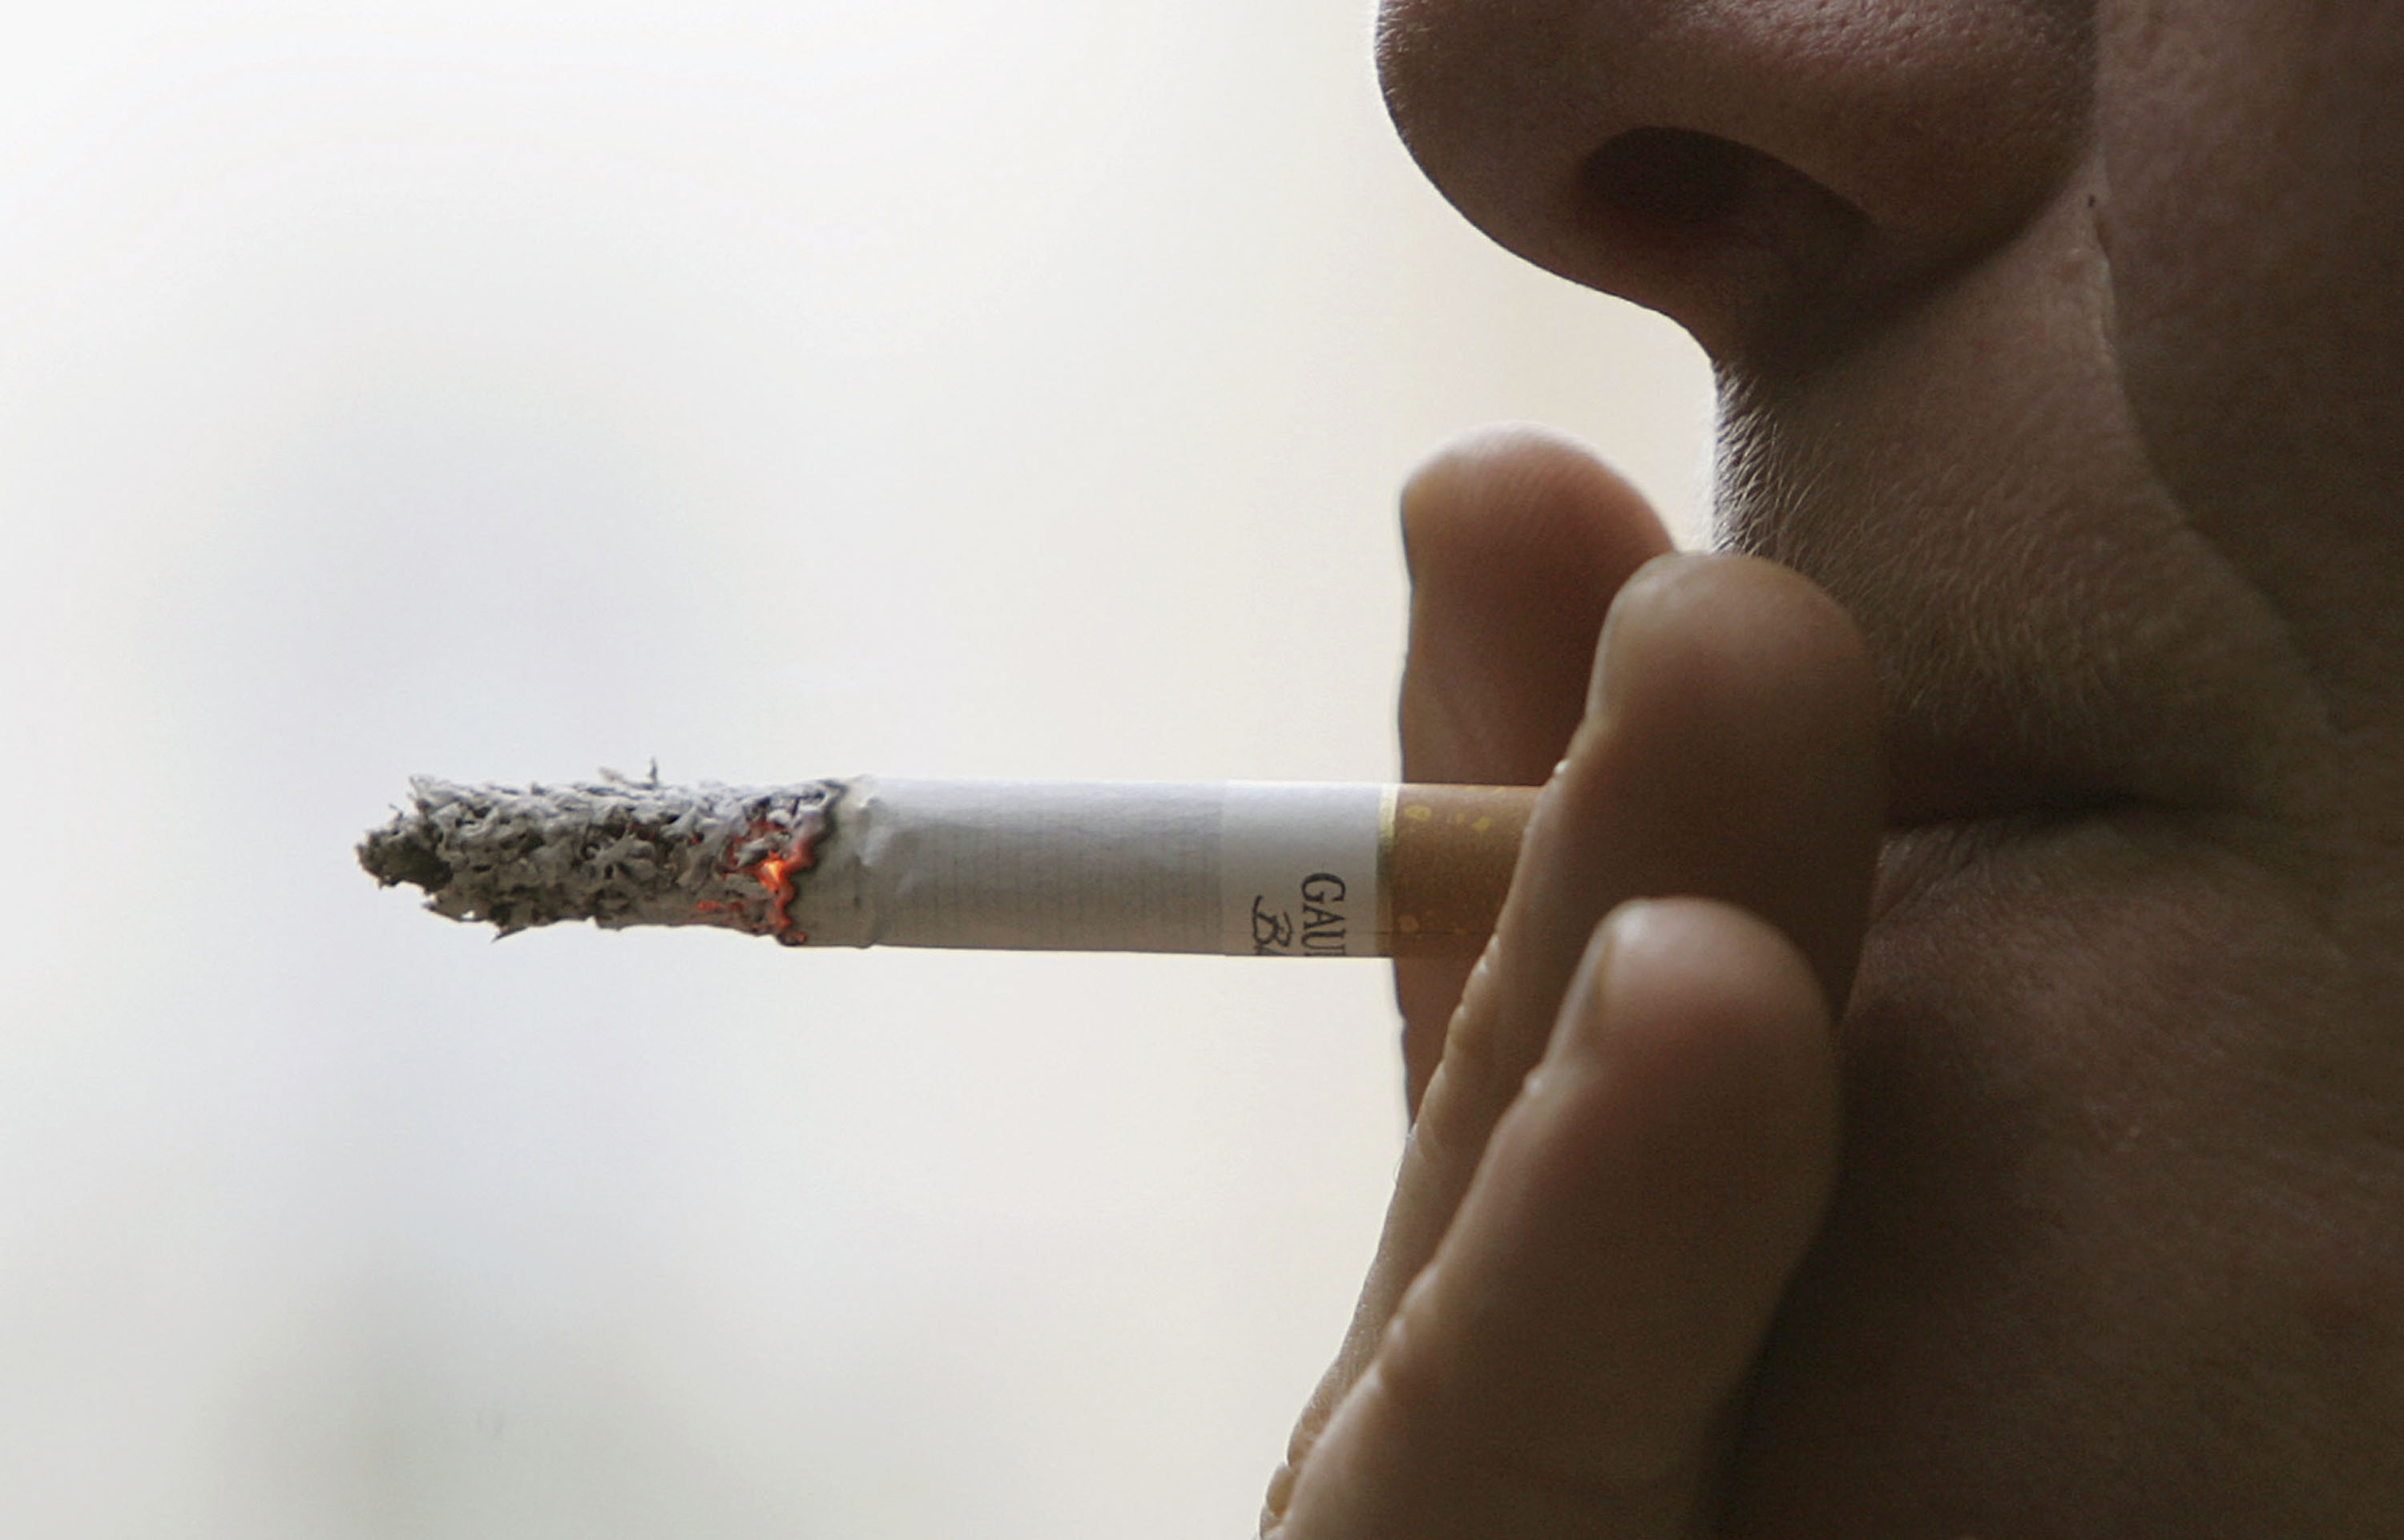 the smoking related diseases the deadly tobacco